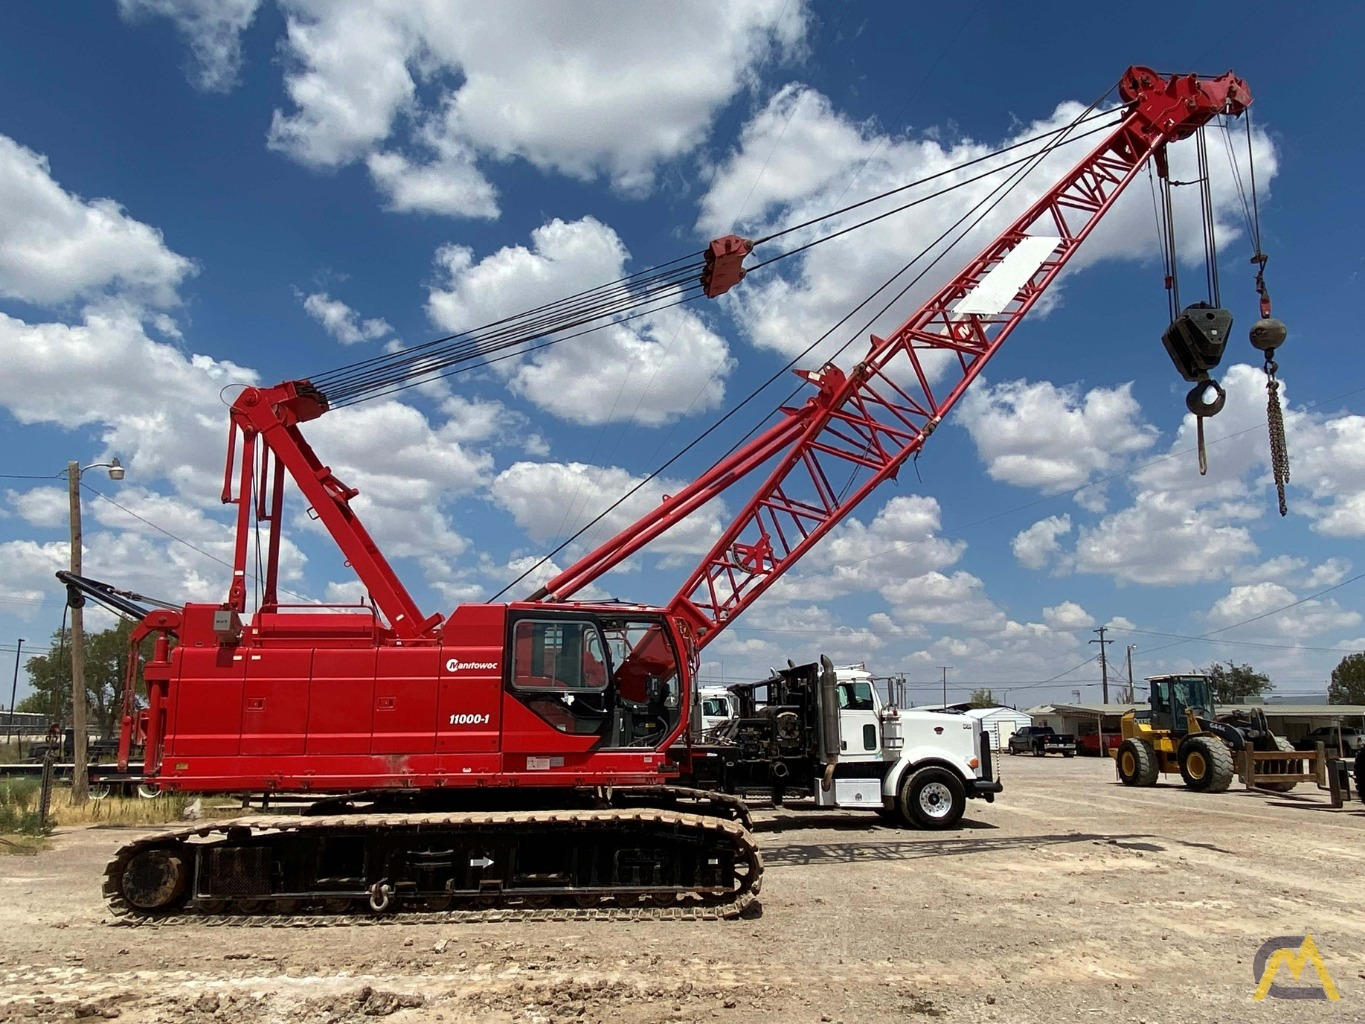 2014 Manitowoc 11000-1 110-Ton Lattice Boom Crawler Crane 0